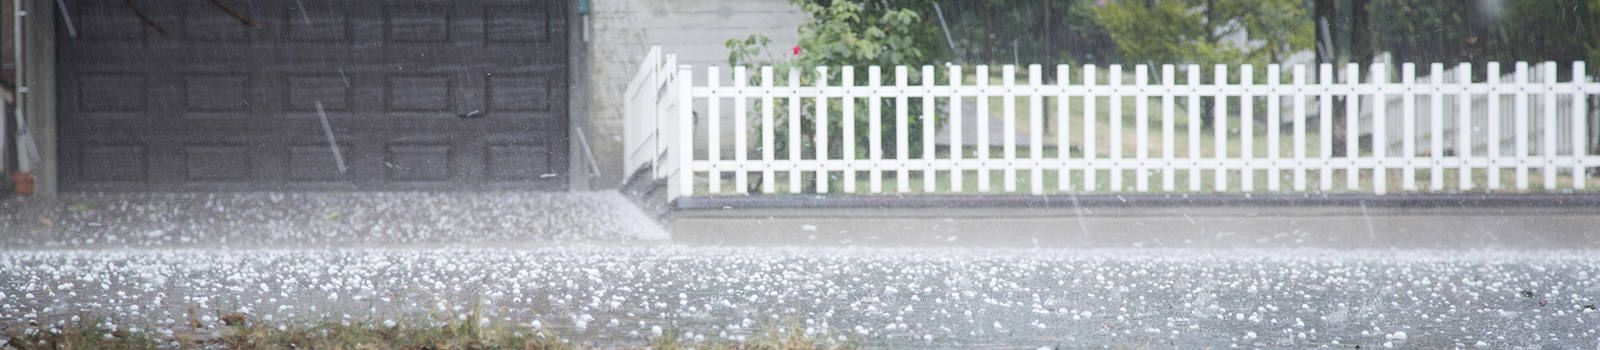 Longmont heavy hail storm in residential neighborhood